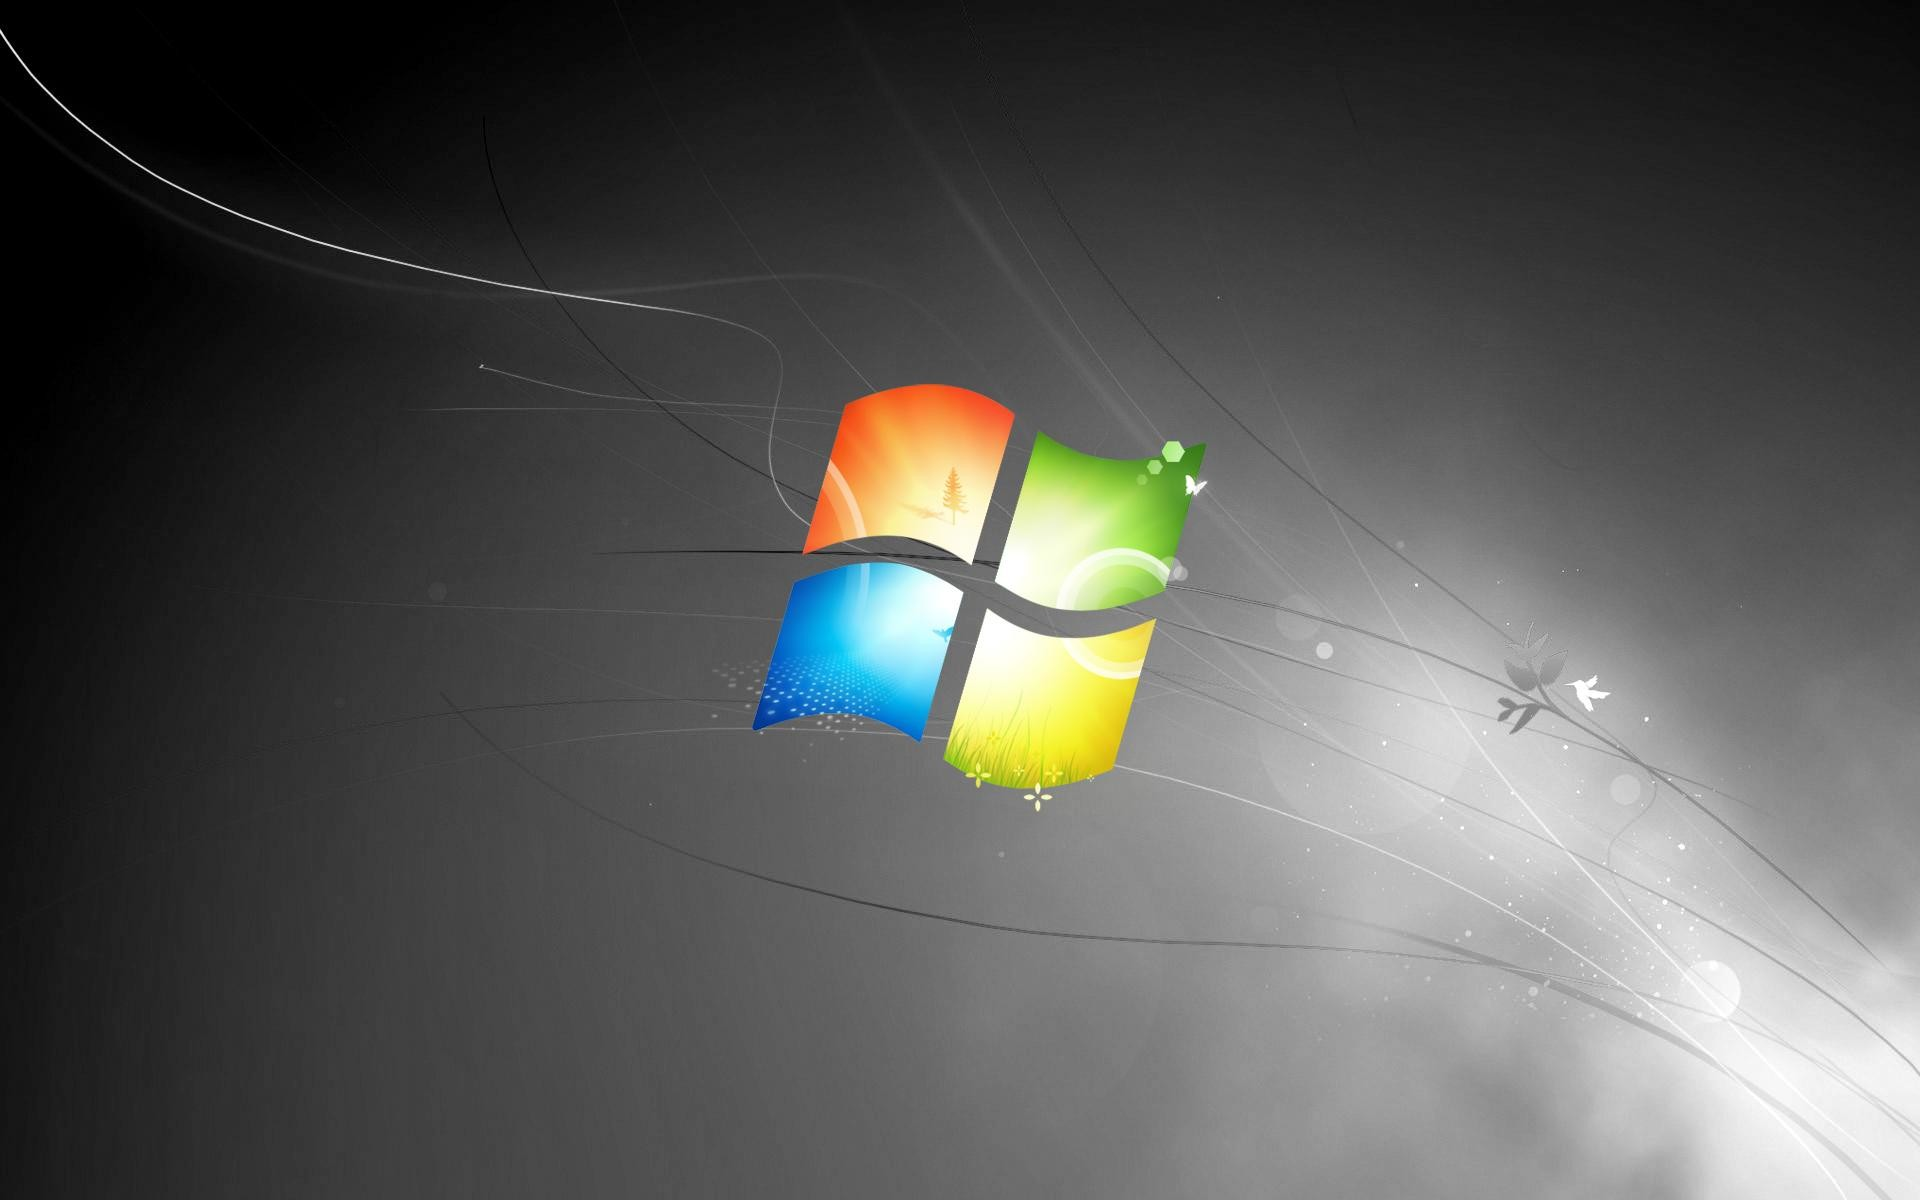 Featured Wallpapers - Windows Help - support.microsoft.com